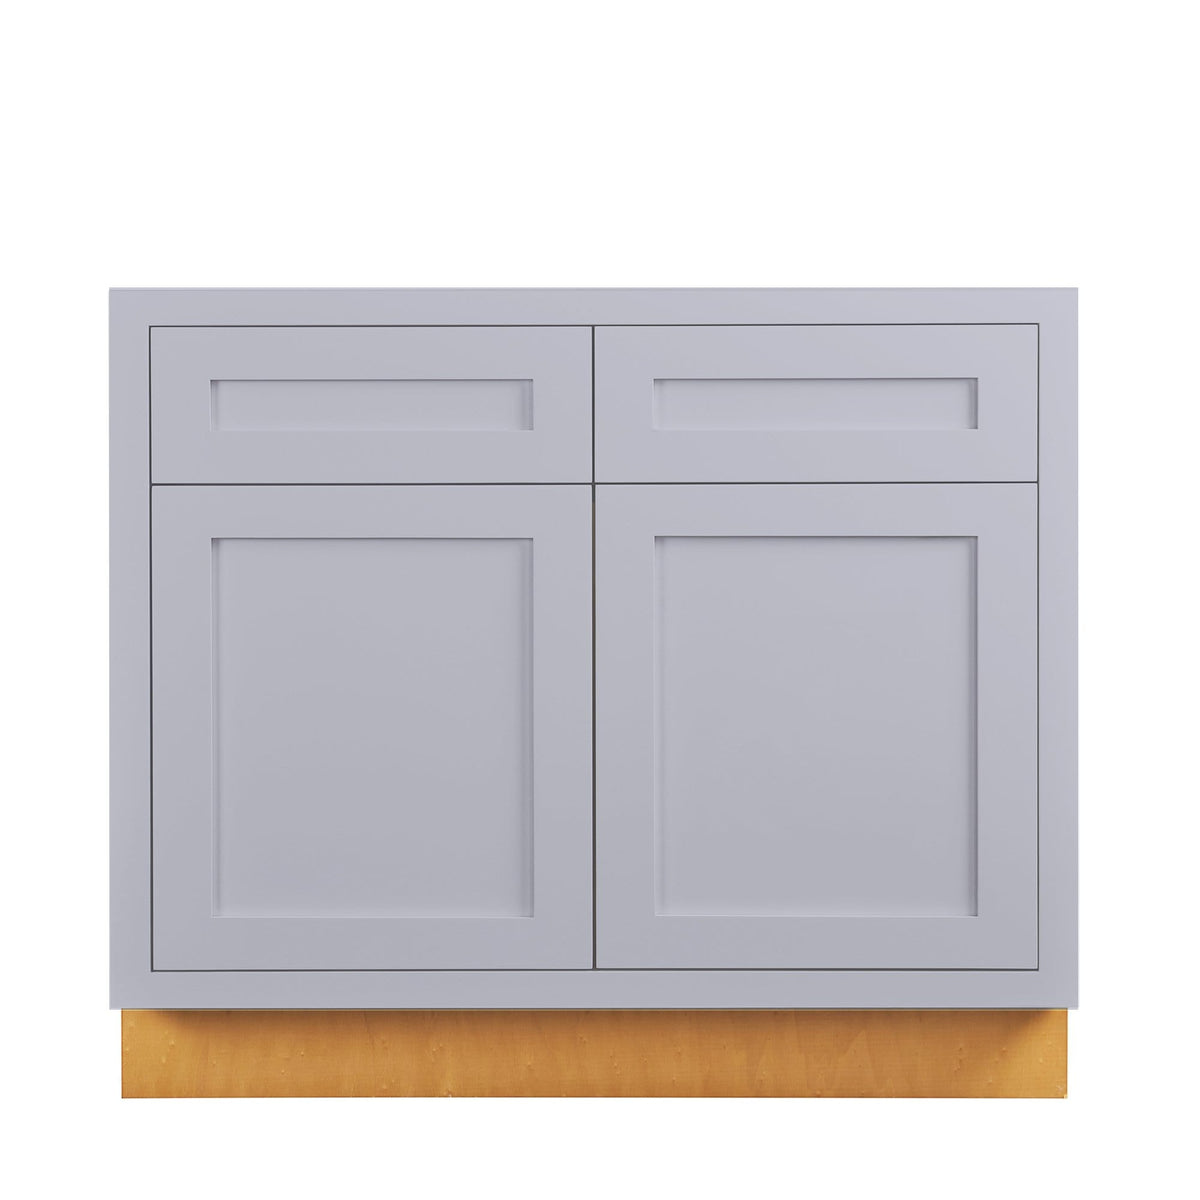 "Base Cabinet Sink Base Light Gray Inset Shaker Cabinets 33"", 36"" D2SB33 Inset Kitchen Cabinets"